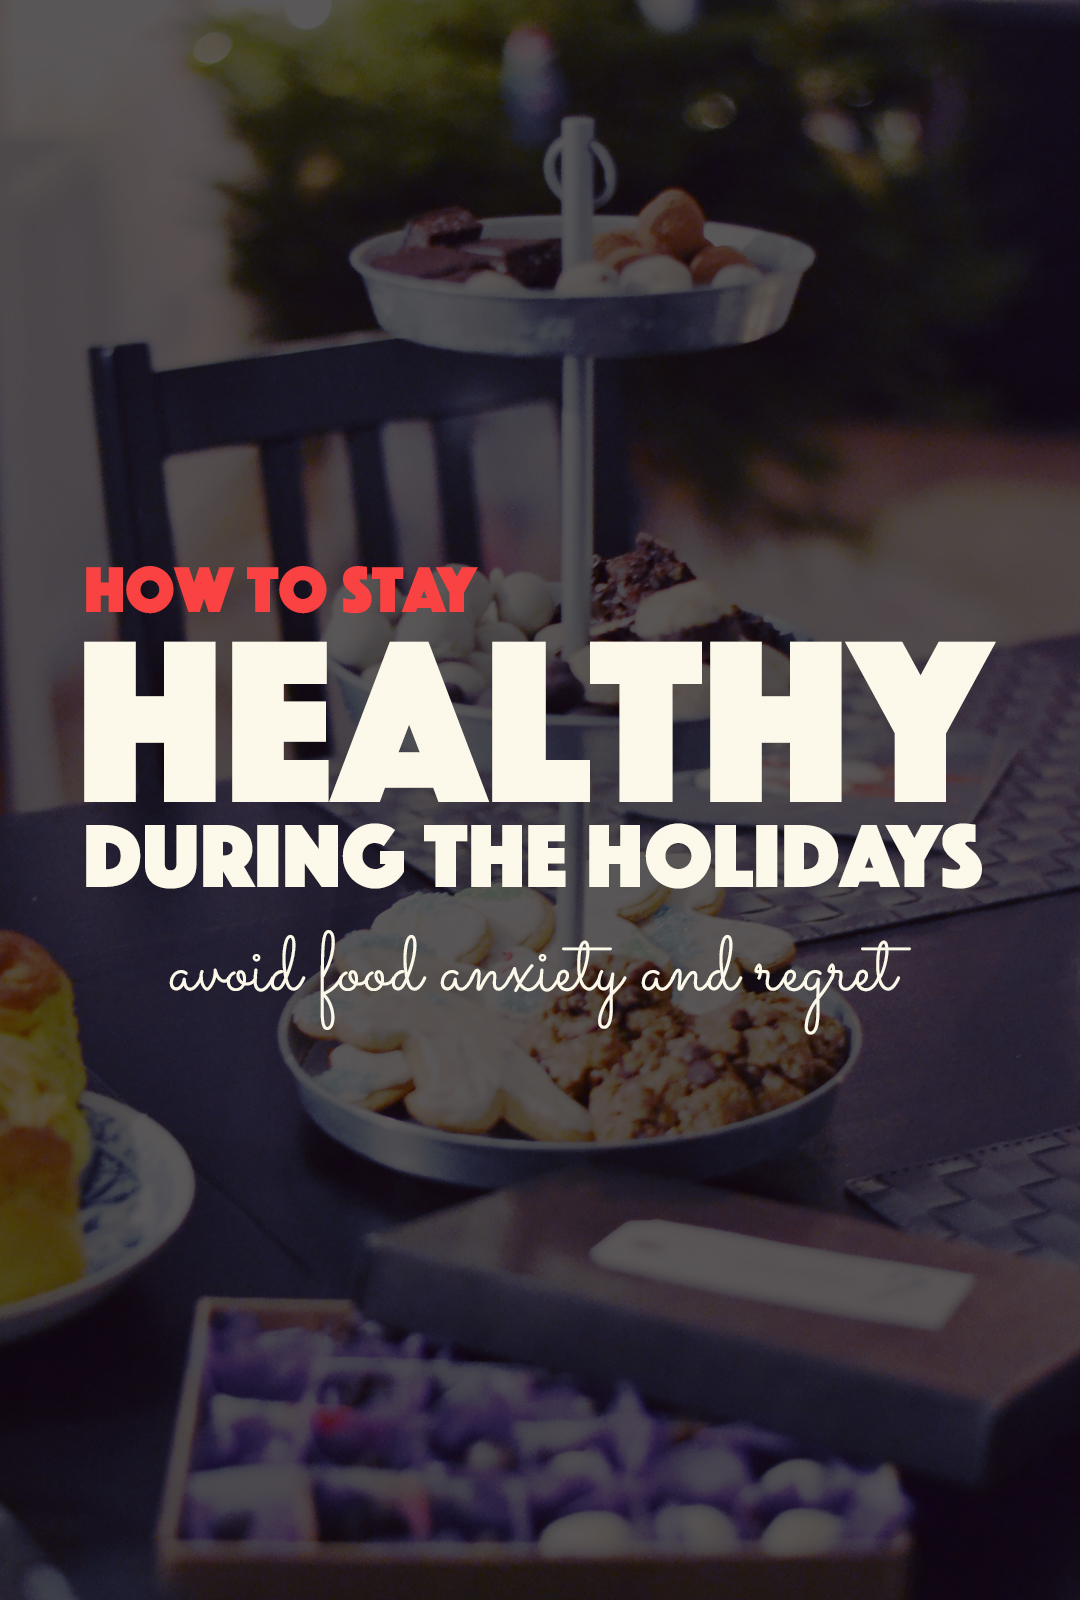 How to Stay Healthy During the Holidays | http://BananaBloom.com #health #holidays #christmas #healthy